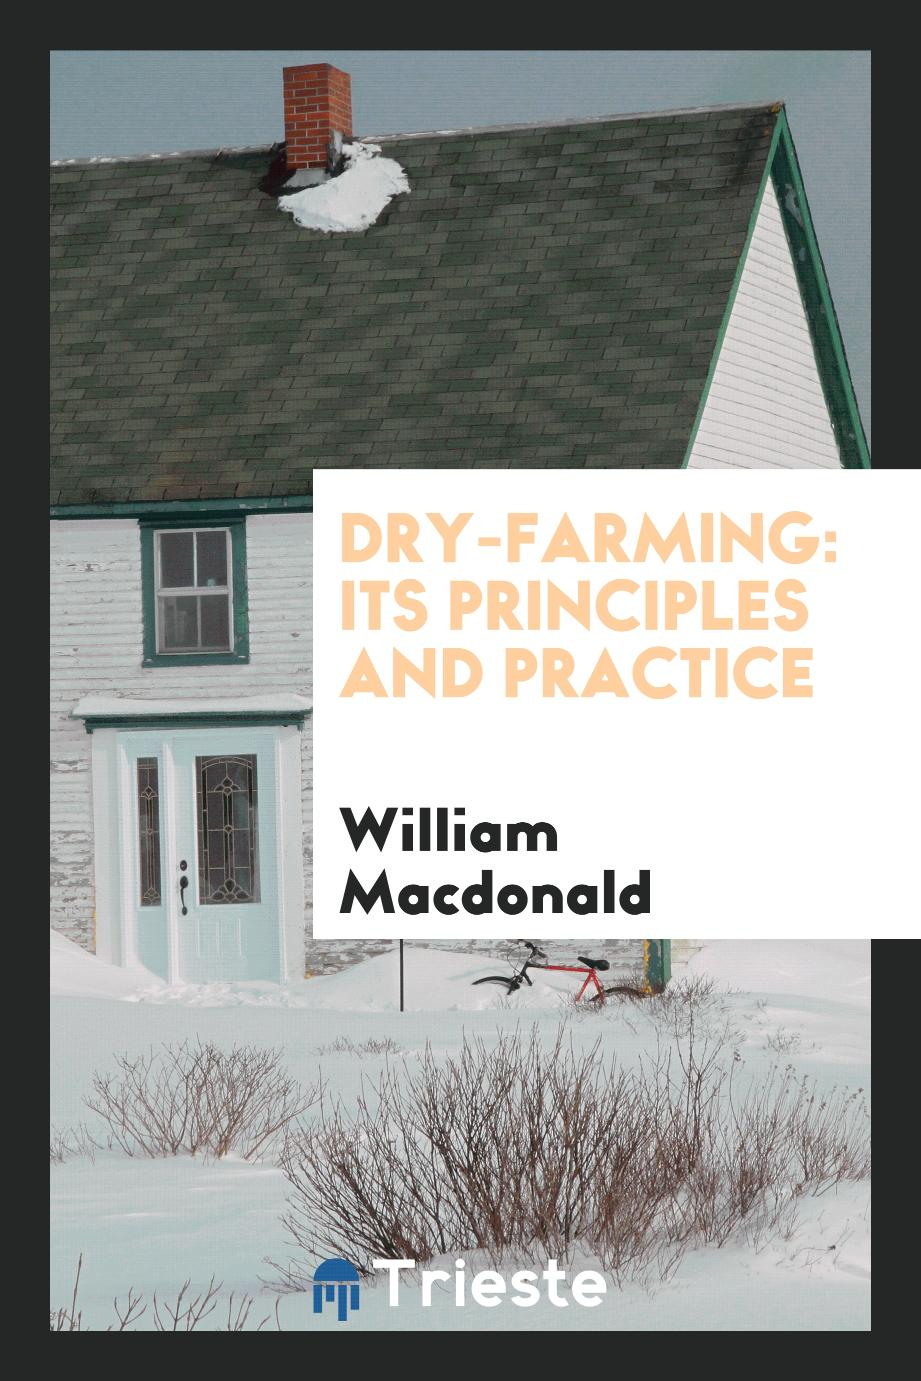 Dry-Farming: Its Principles and Practice